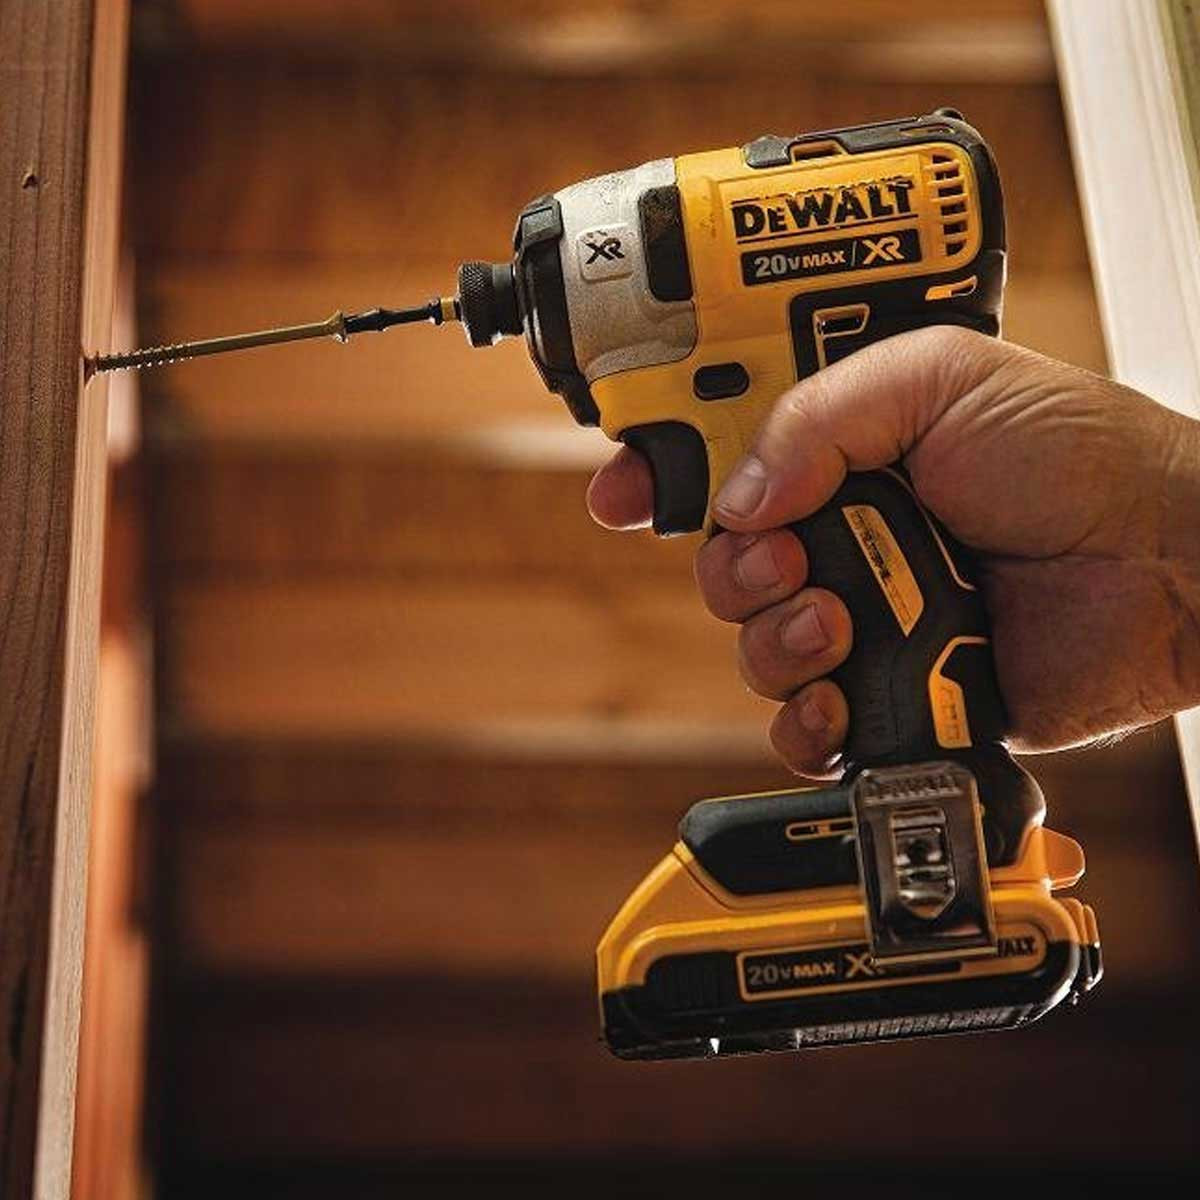 Dewalt 20 V MAX 3-Speed Impact Driver action